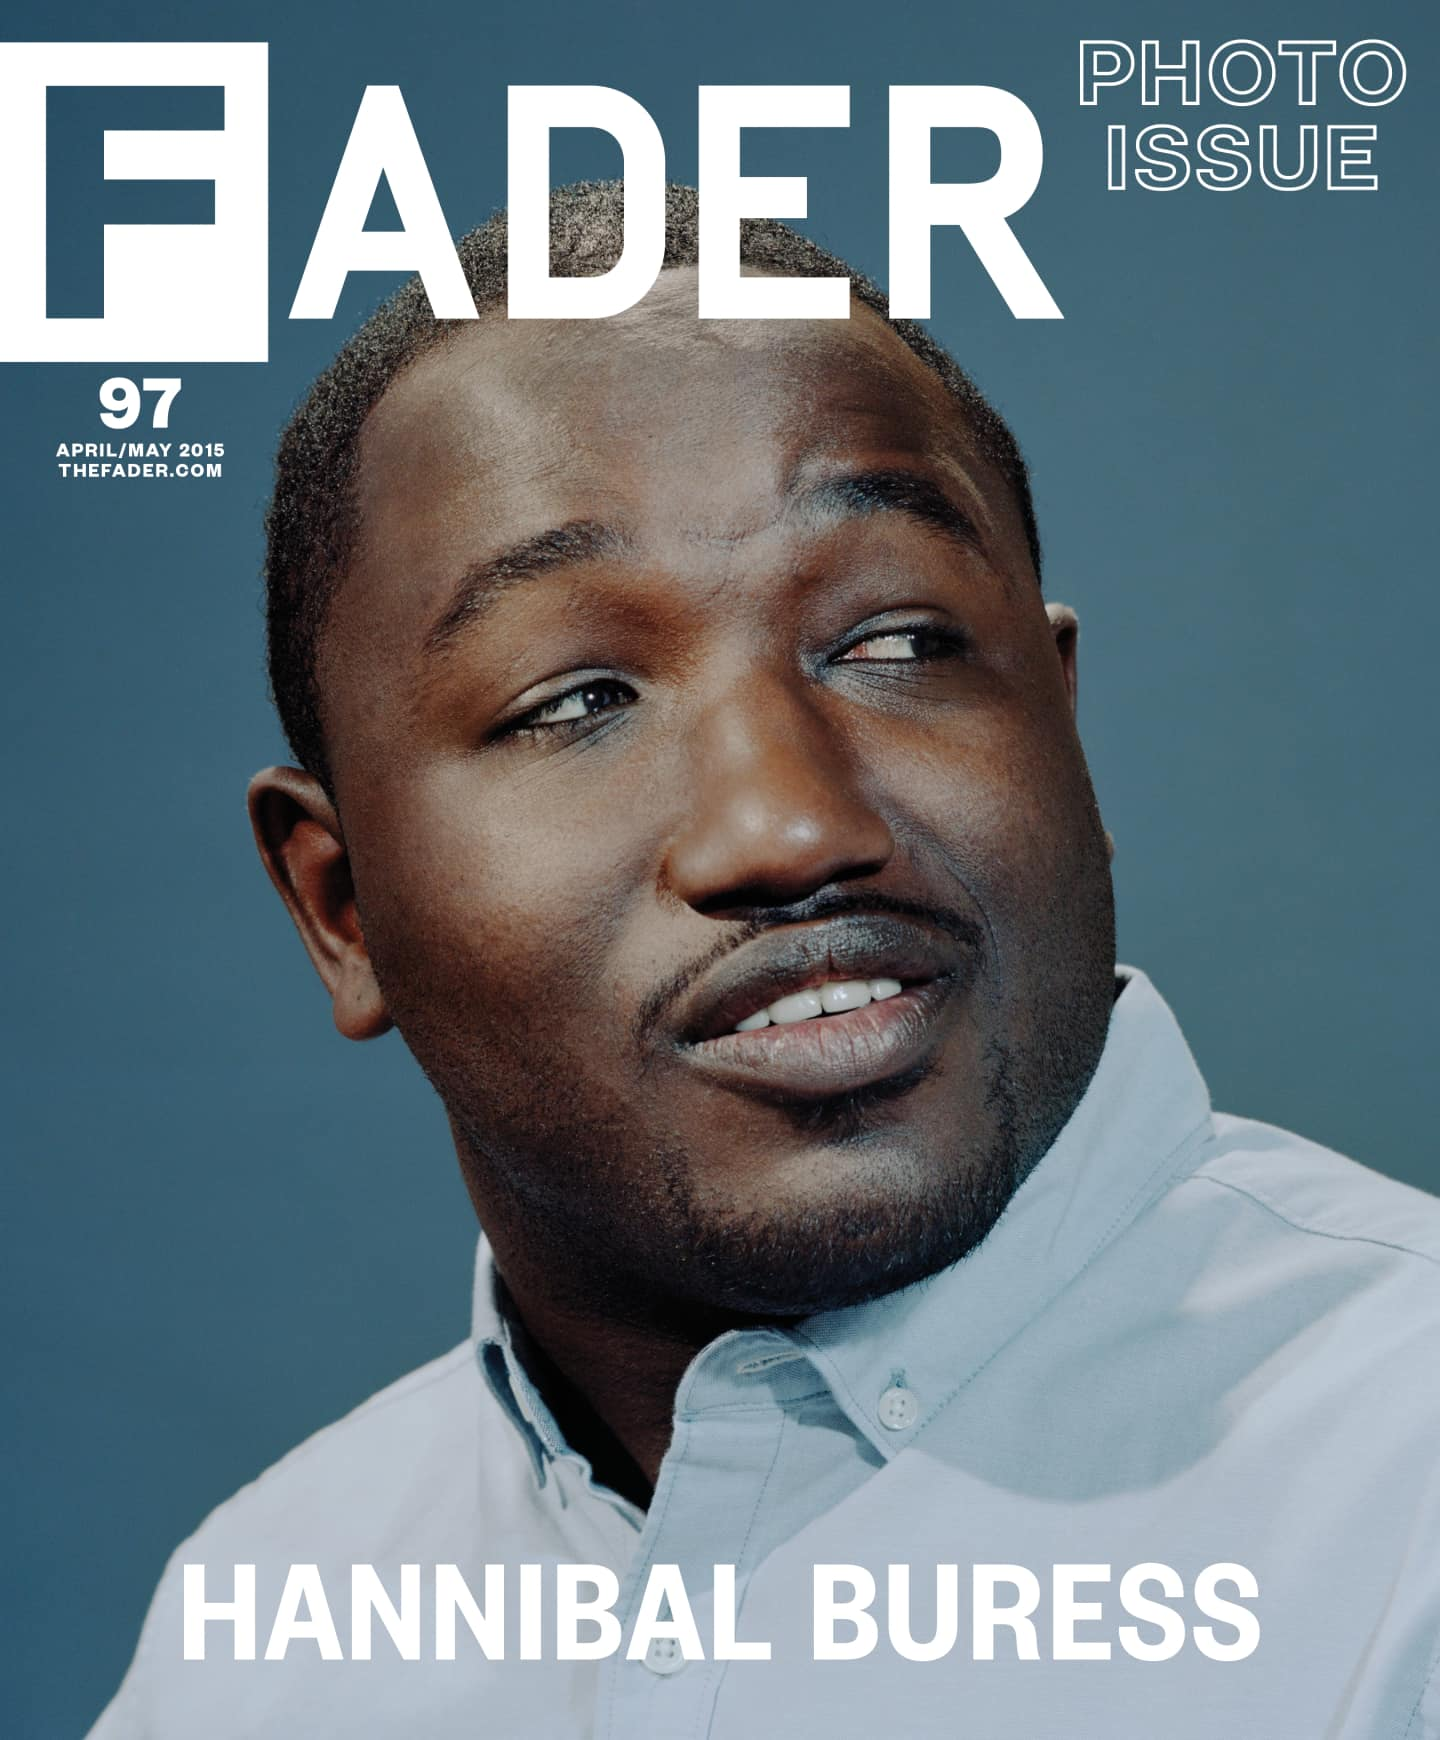 hannibal buress cover